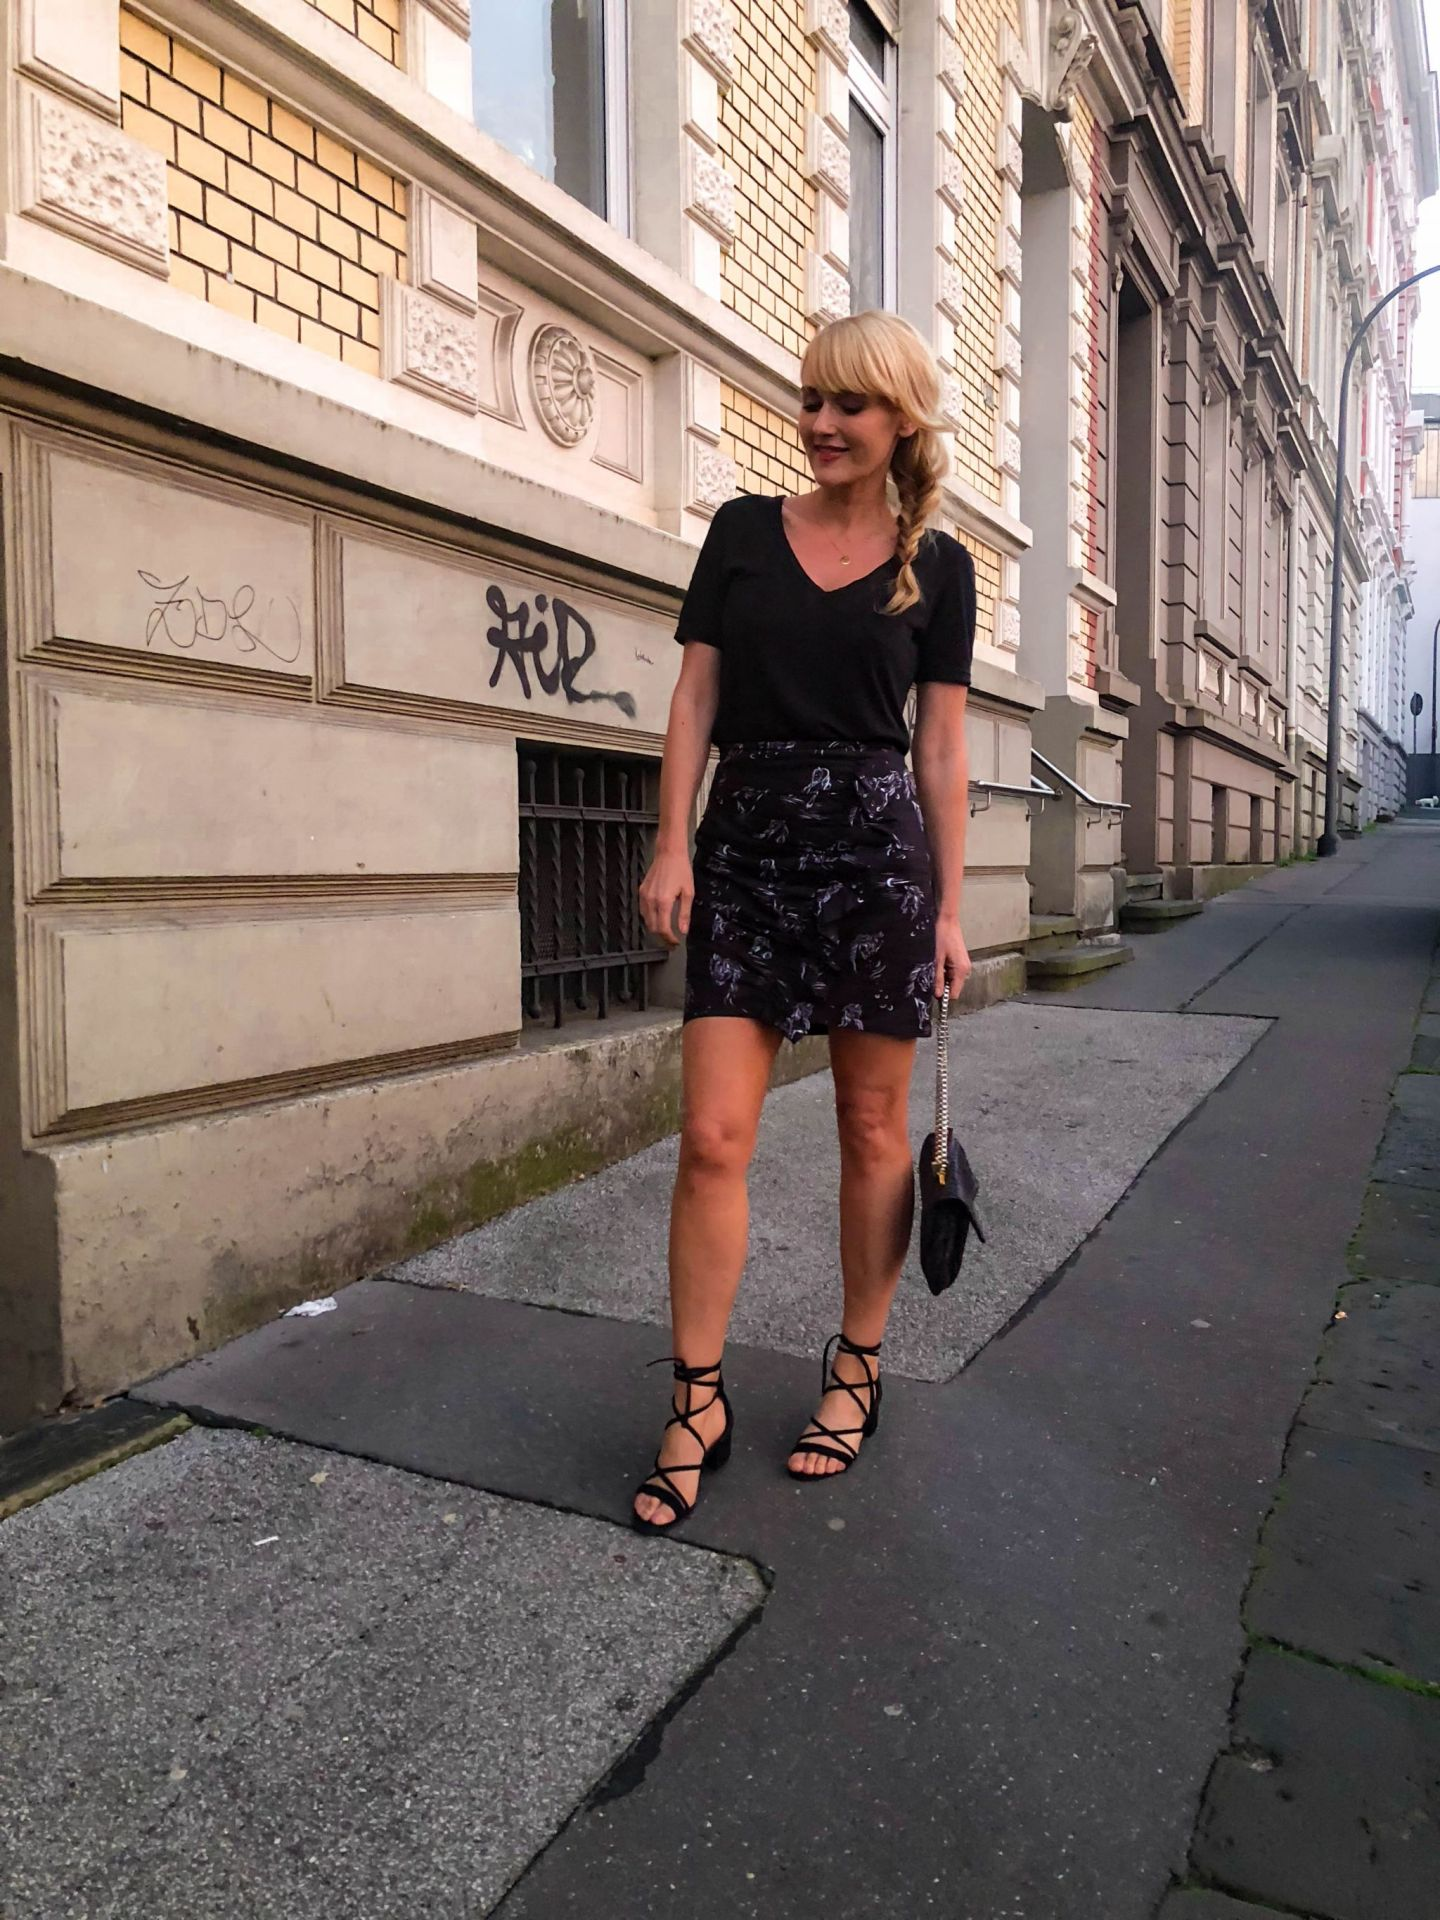 Sandalen von & Other Stories - Nowshine ü 40 Fashion, Beauty und Reiseblog